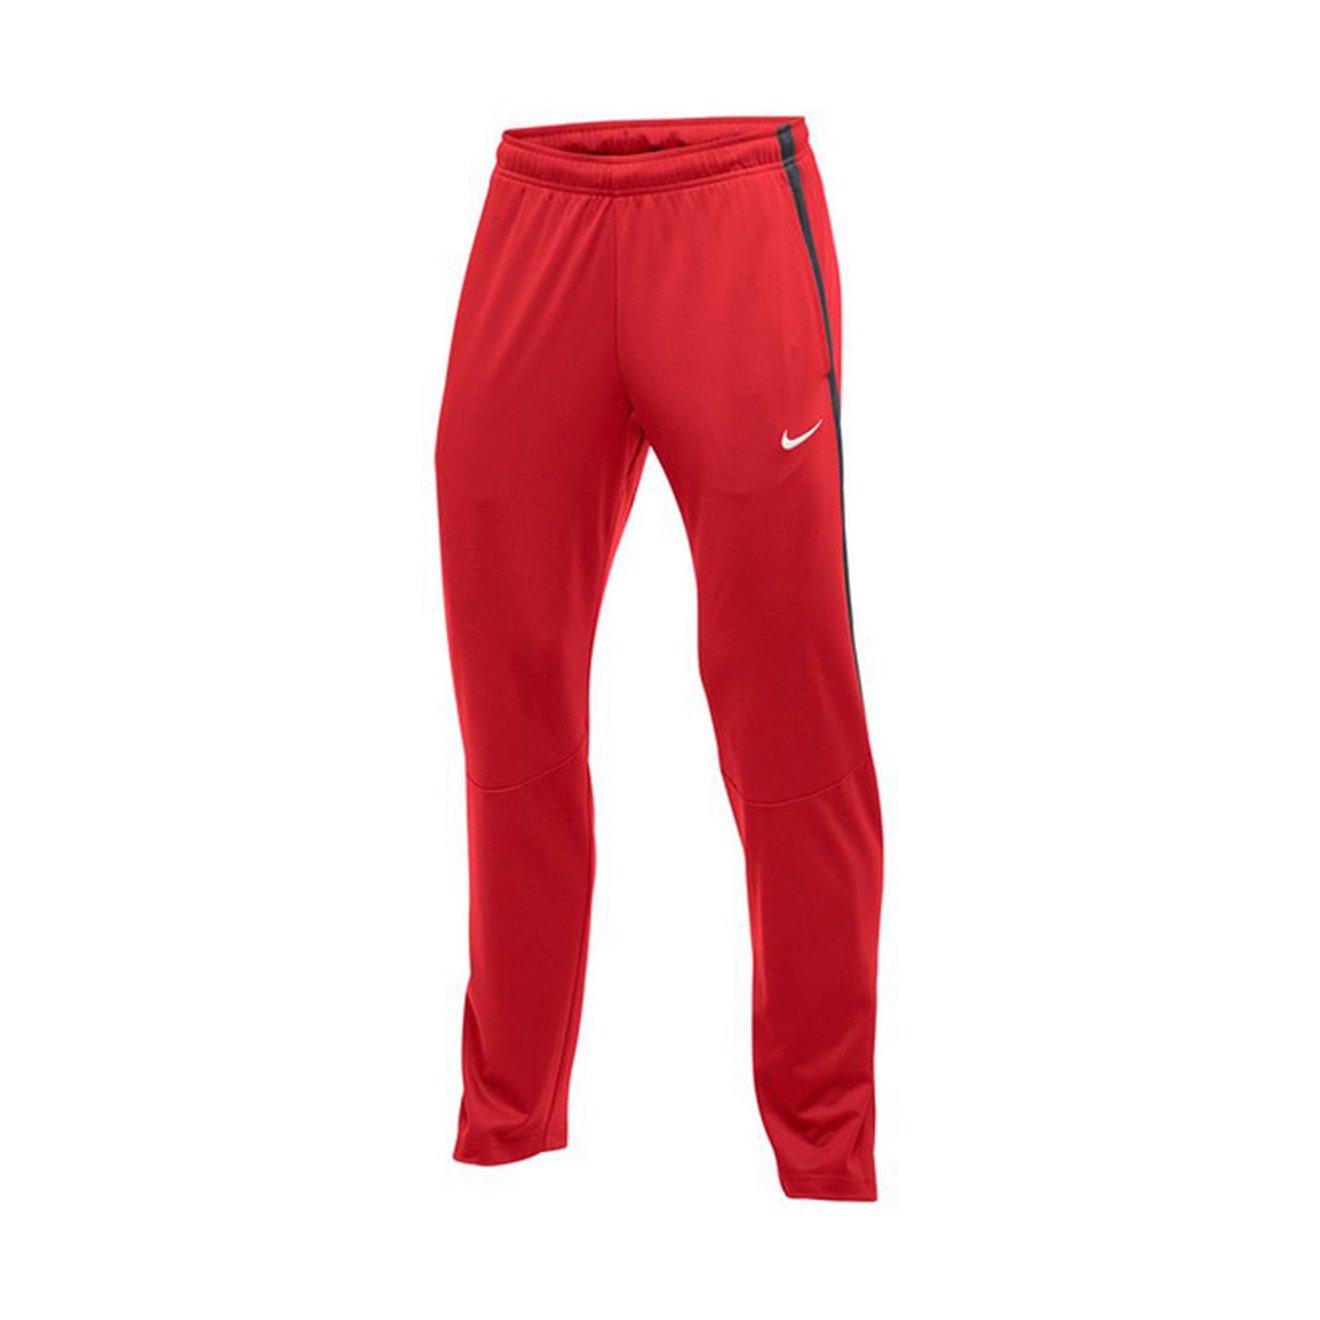 Nike Epic Training Pant Male Scarlet Small